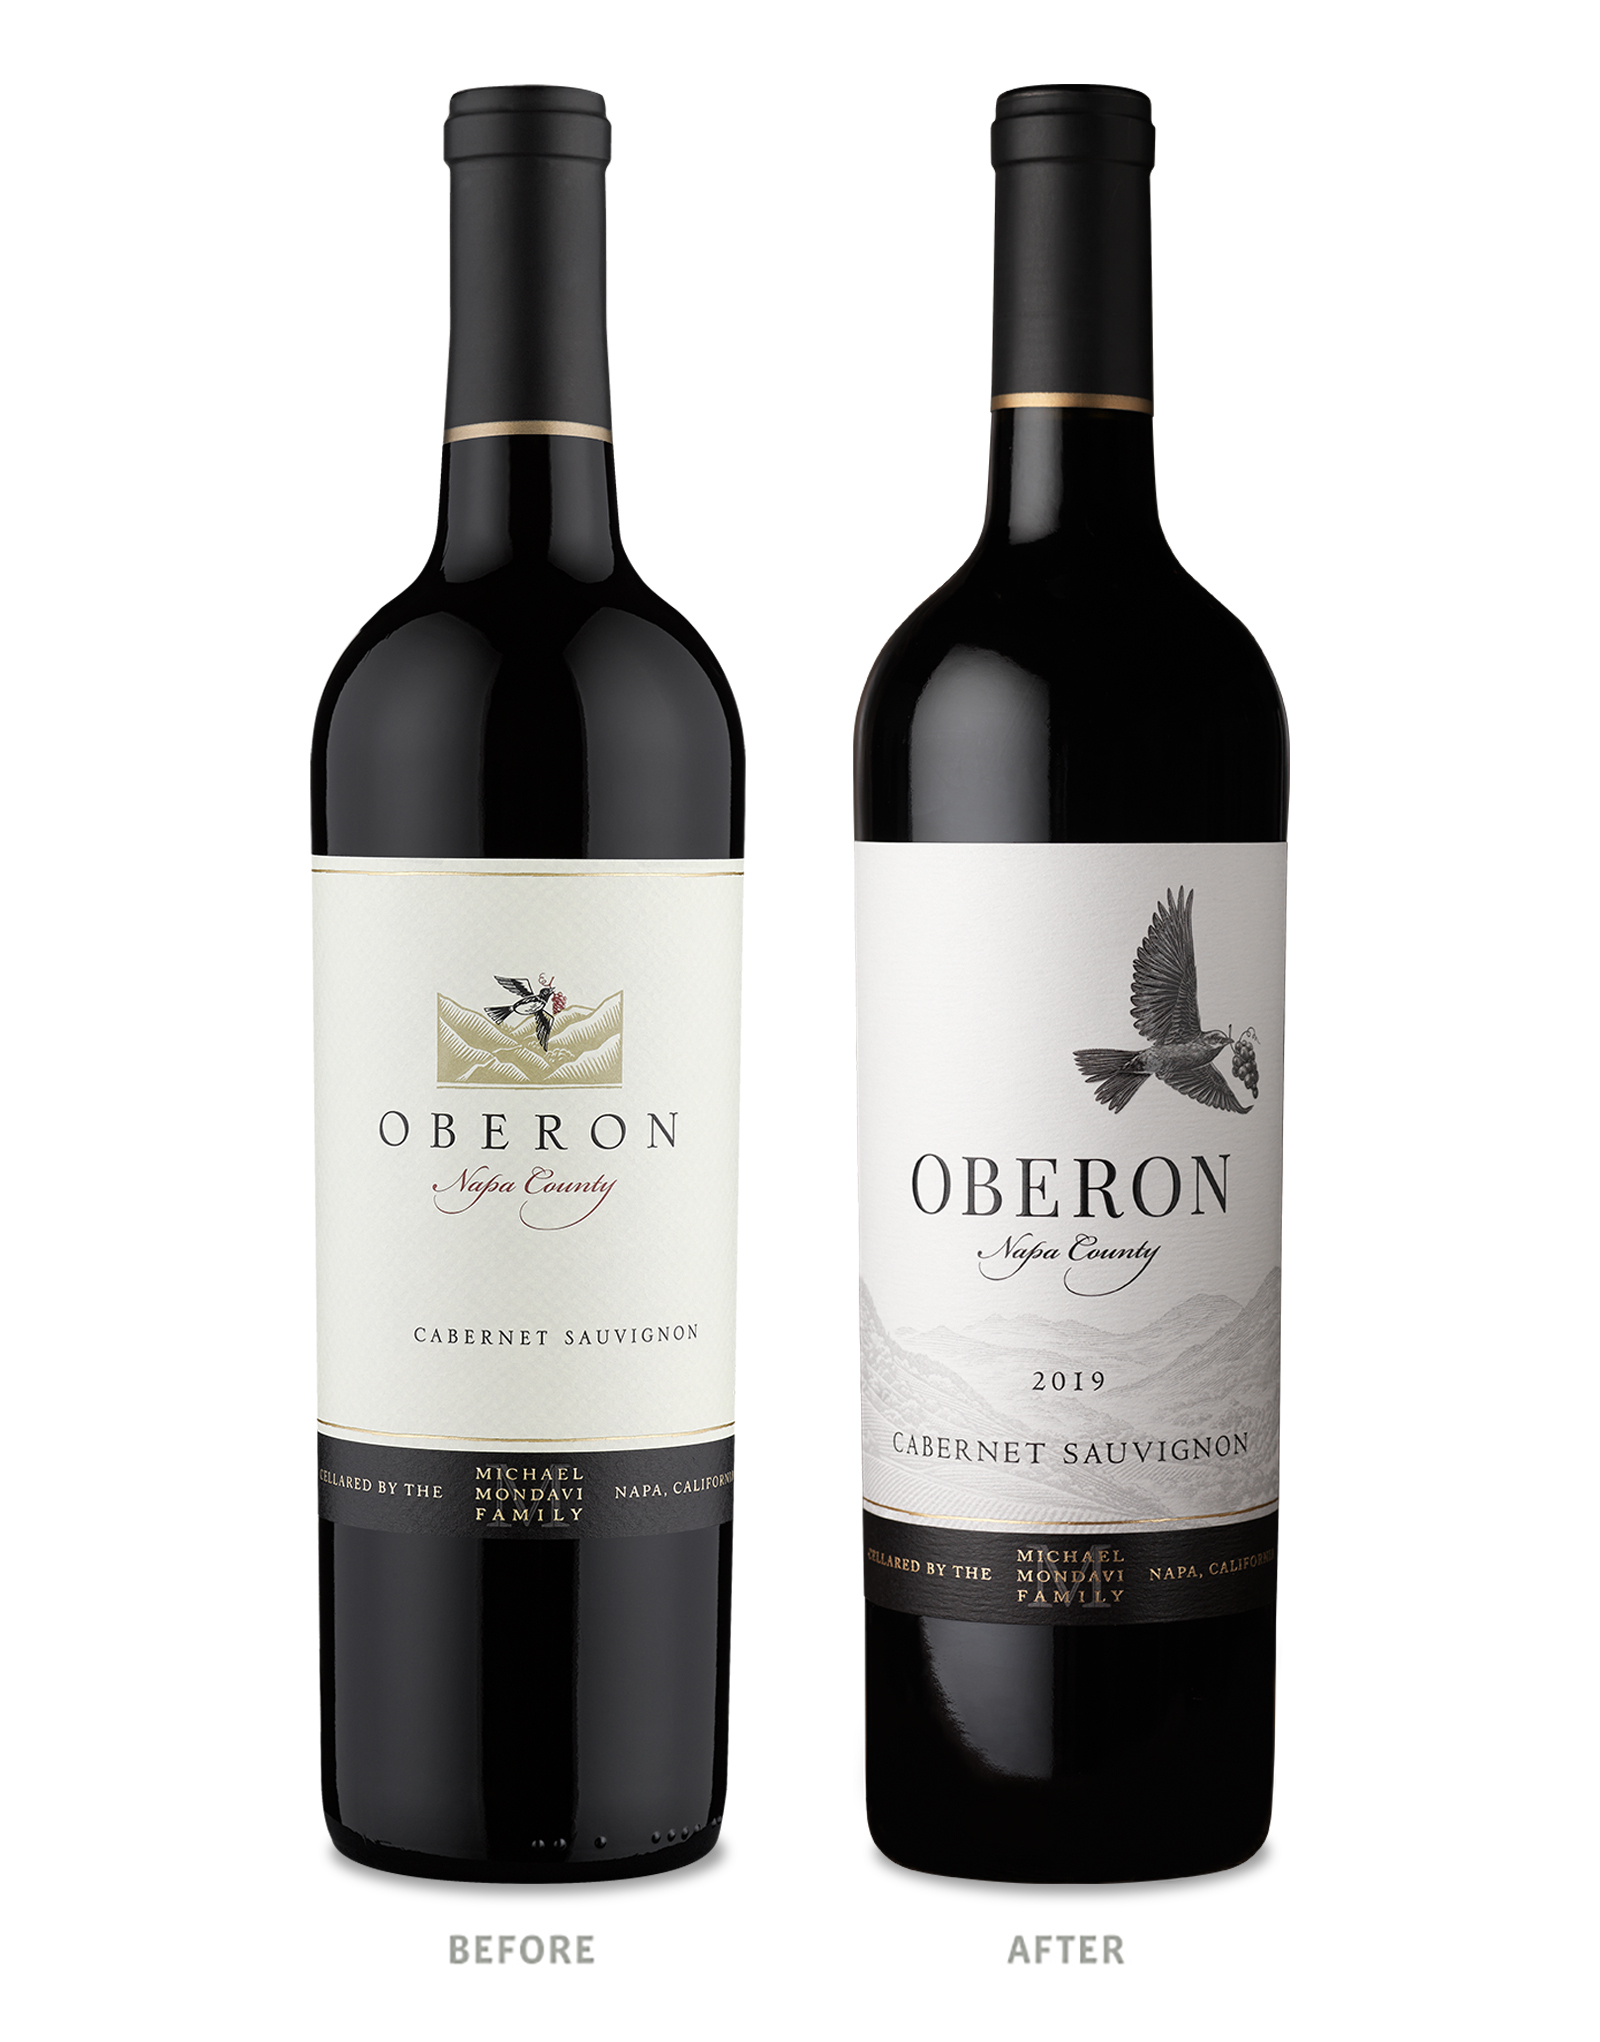 Oberon Wine Packaging Before Redesign on Left & After on Right